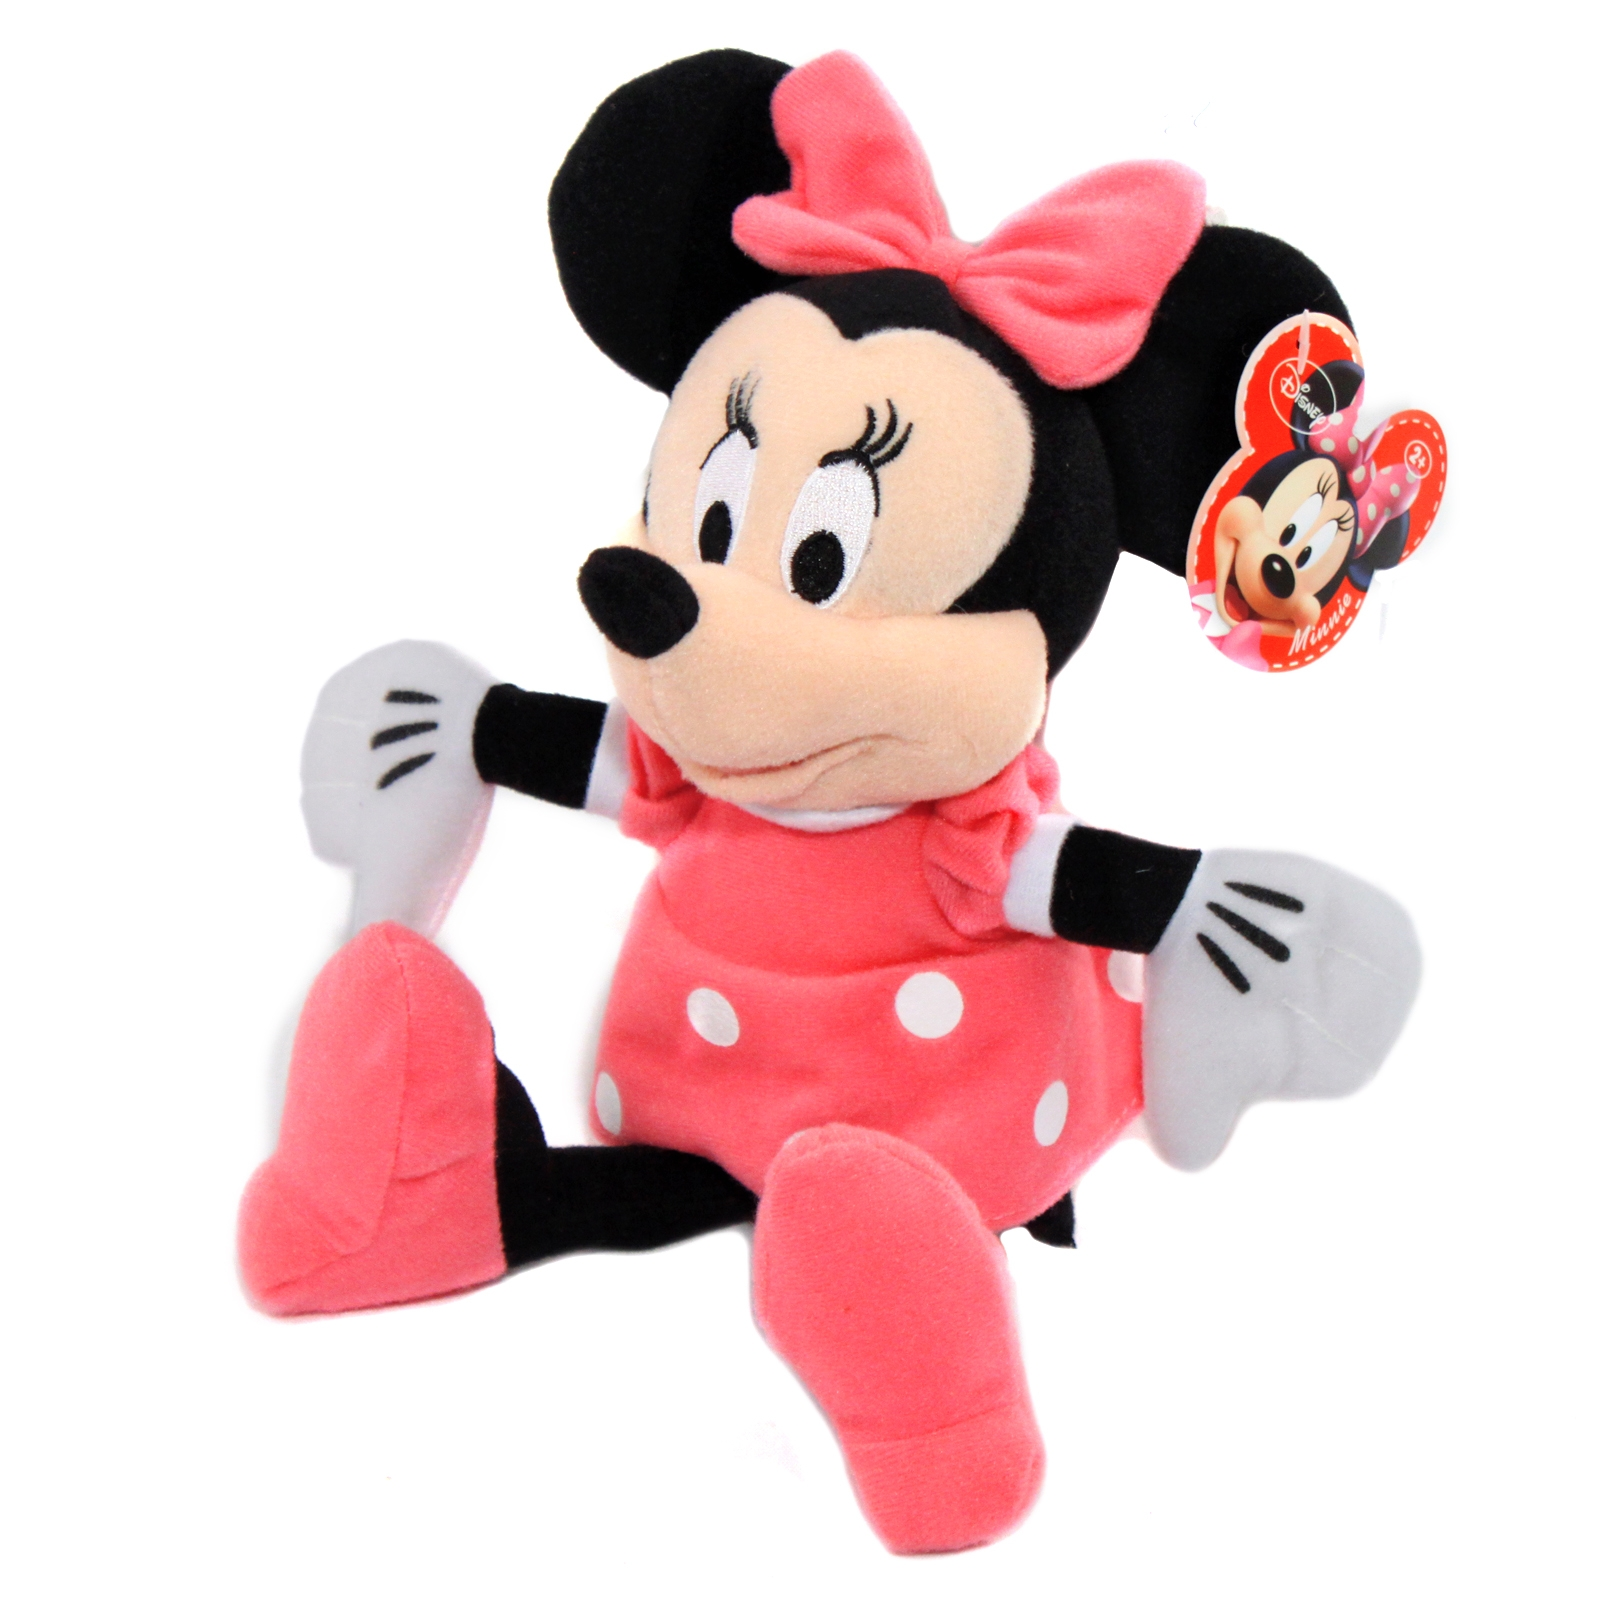 "Disney Minnie Mouse Plush Doll 11"" Girls Toy"